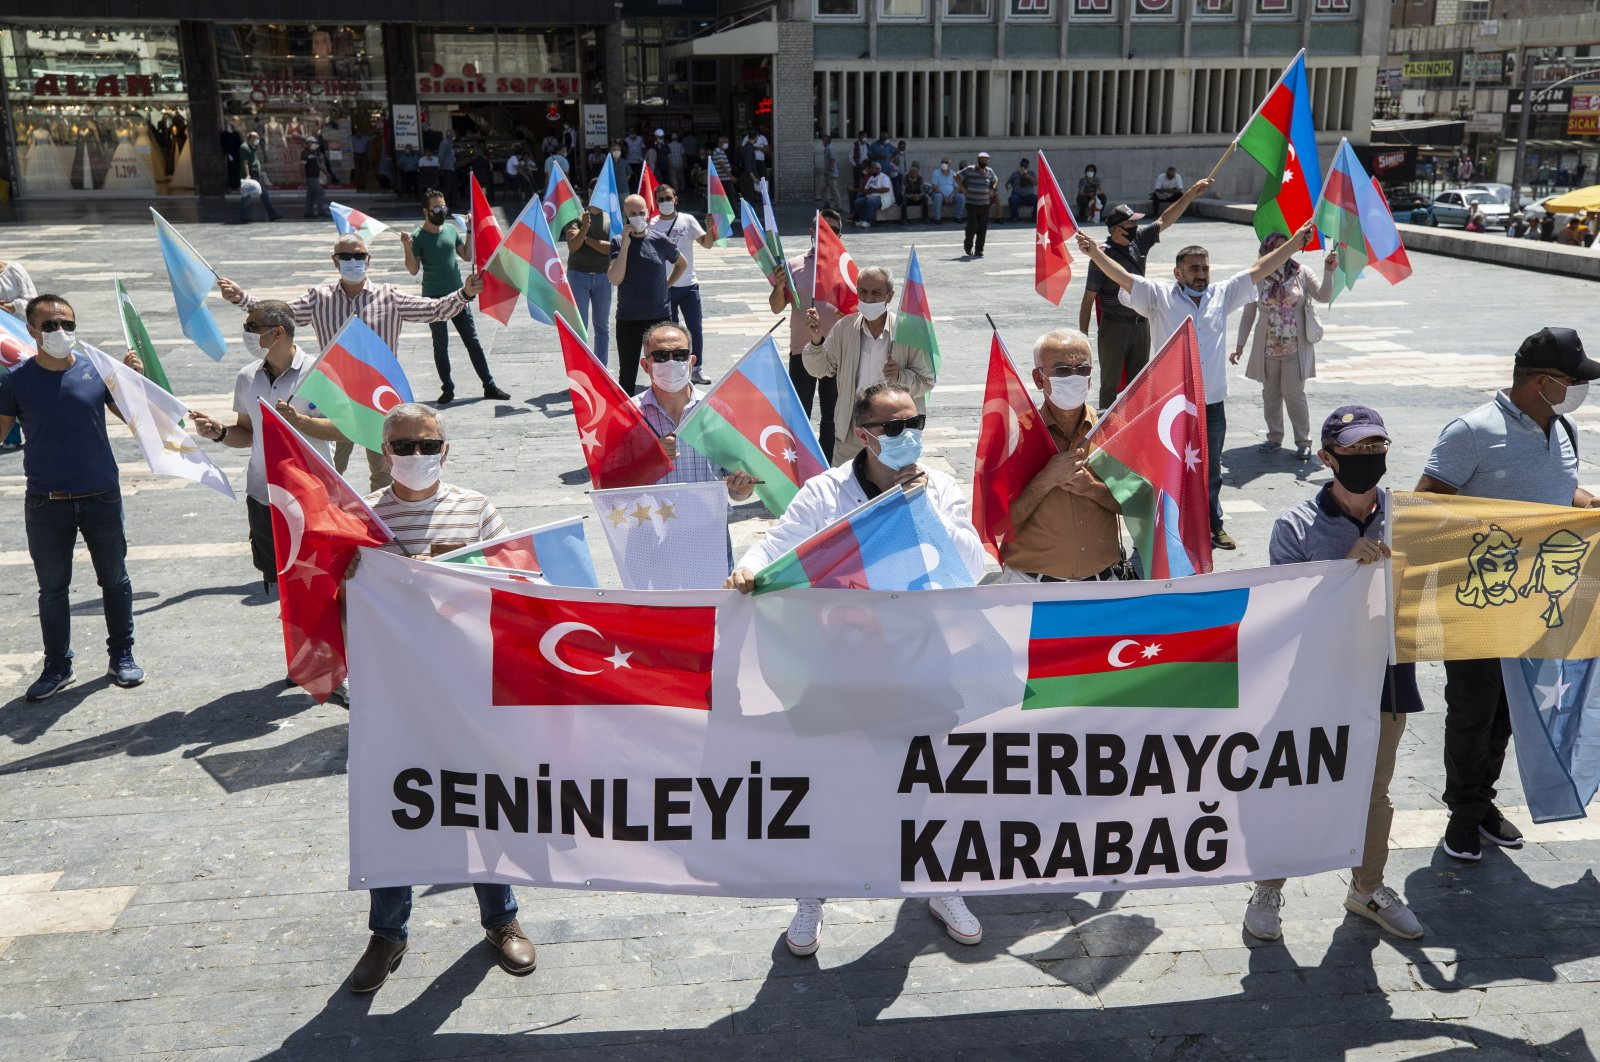 People demonstrate their support for Azerbaijan against the recent Armenian attacks, in Turkish capital Ankara, Aug. 8, 2020. (AA Photo)